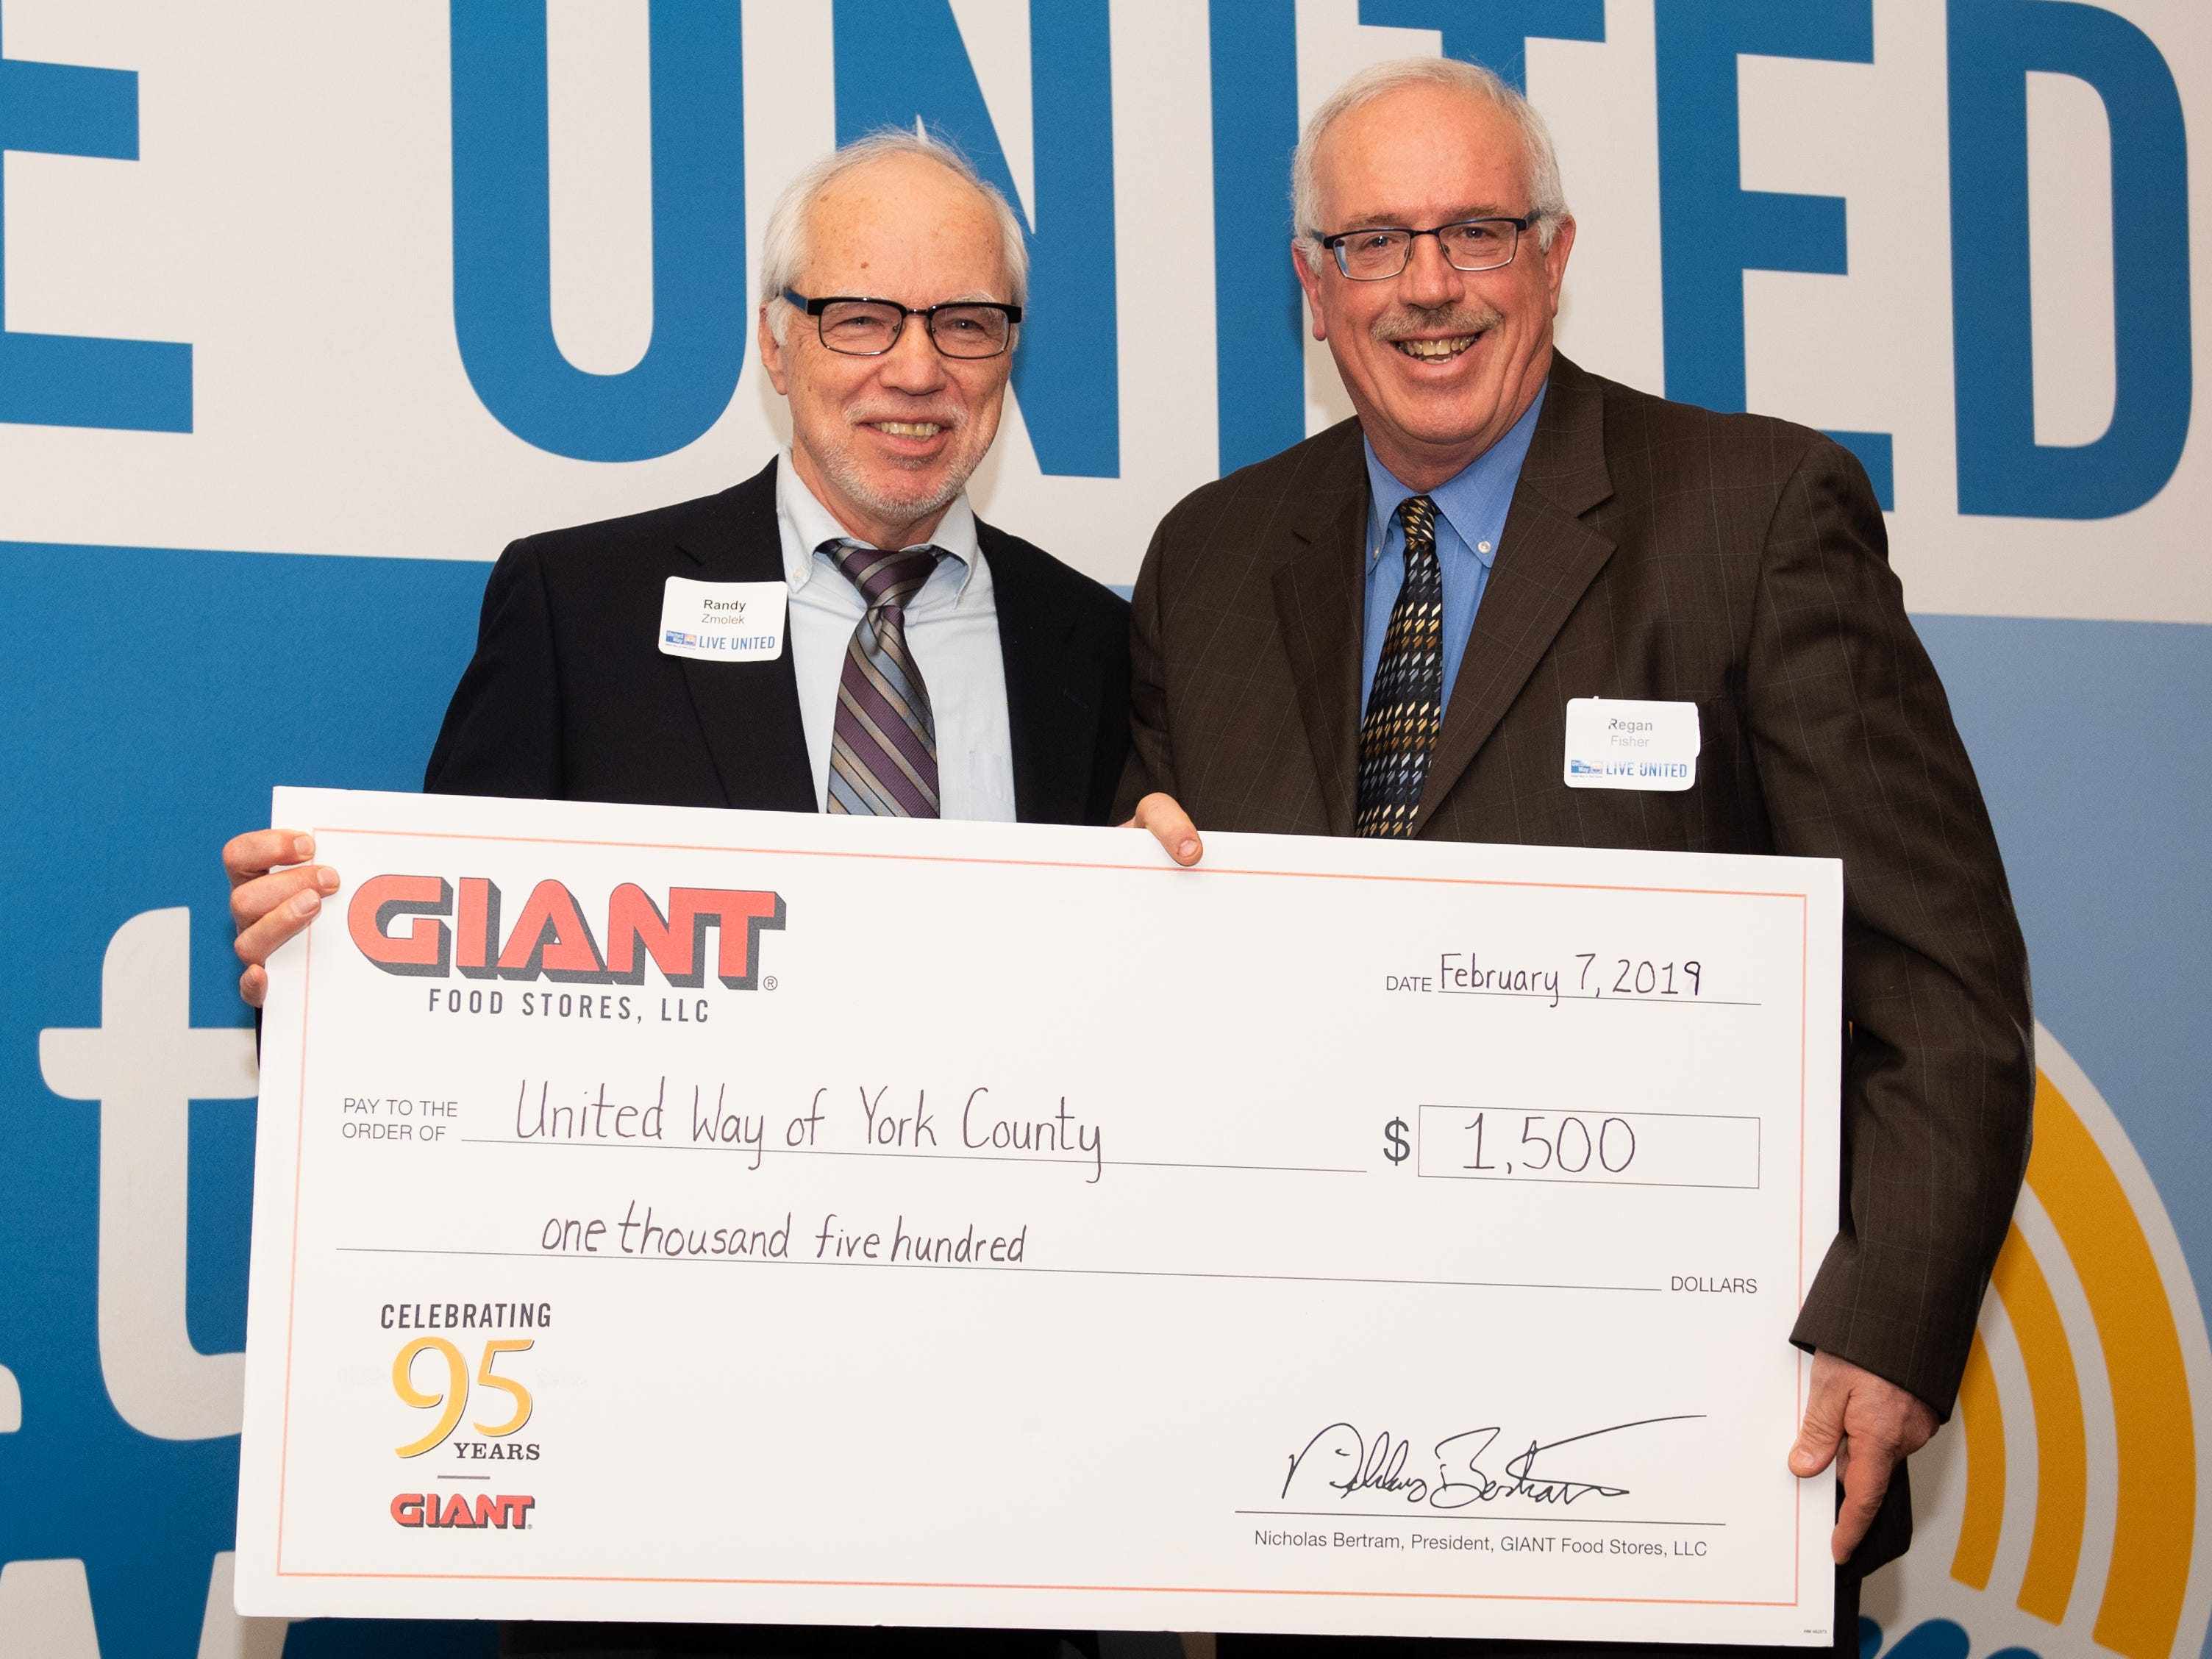 Randy Zmolek of Pixelle Specialty Solutions (left) won $1,500 in GIANT Gift Cards during the 2018 United Way Campaign Celebration, February 7, 2019.